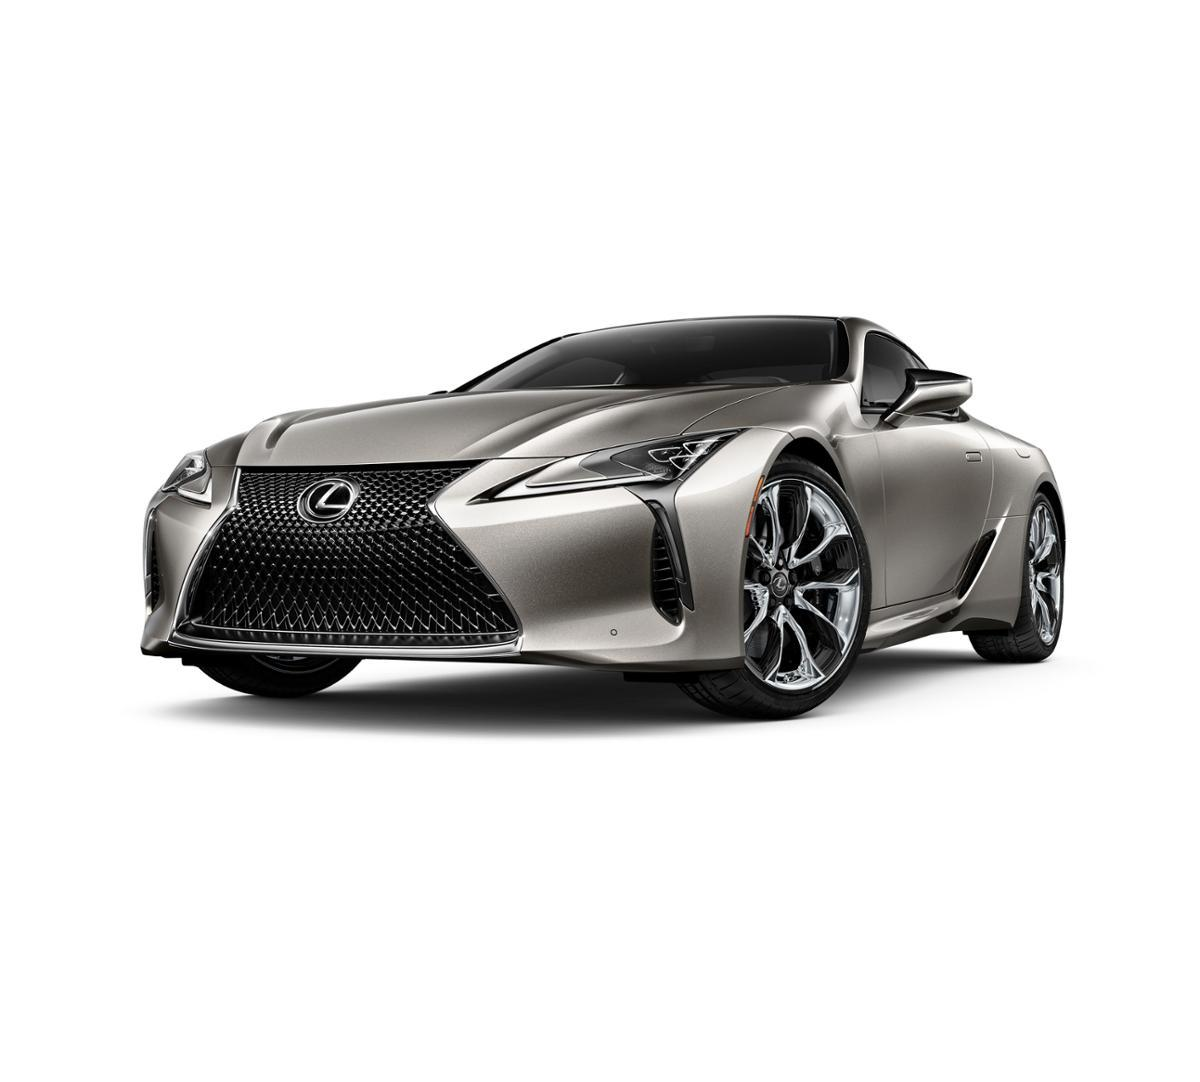 2018 Lexus LC 500 Vehicle Photo in Fort Worth, TX 76132